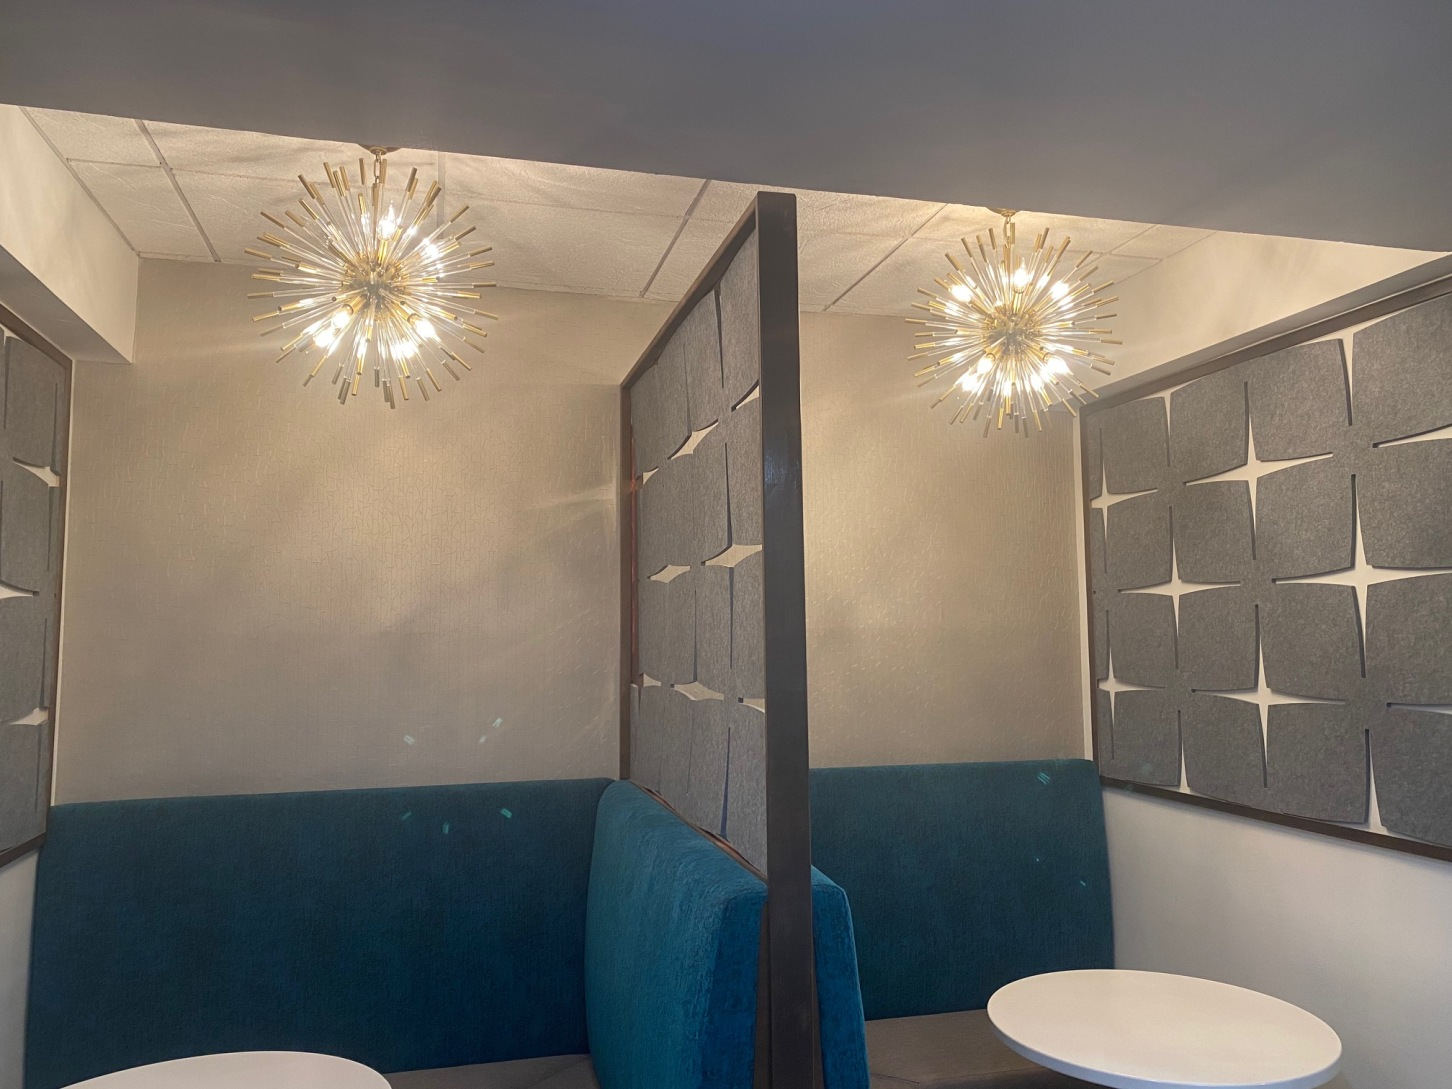 Art Installations in Hotels, Restaurants, Apartments, and More